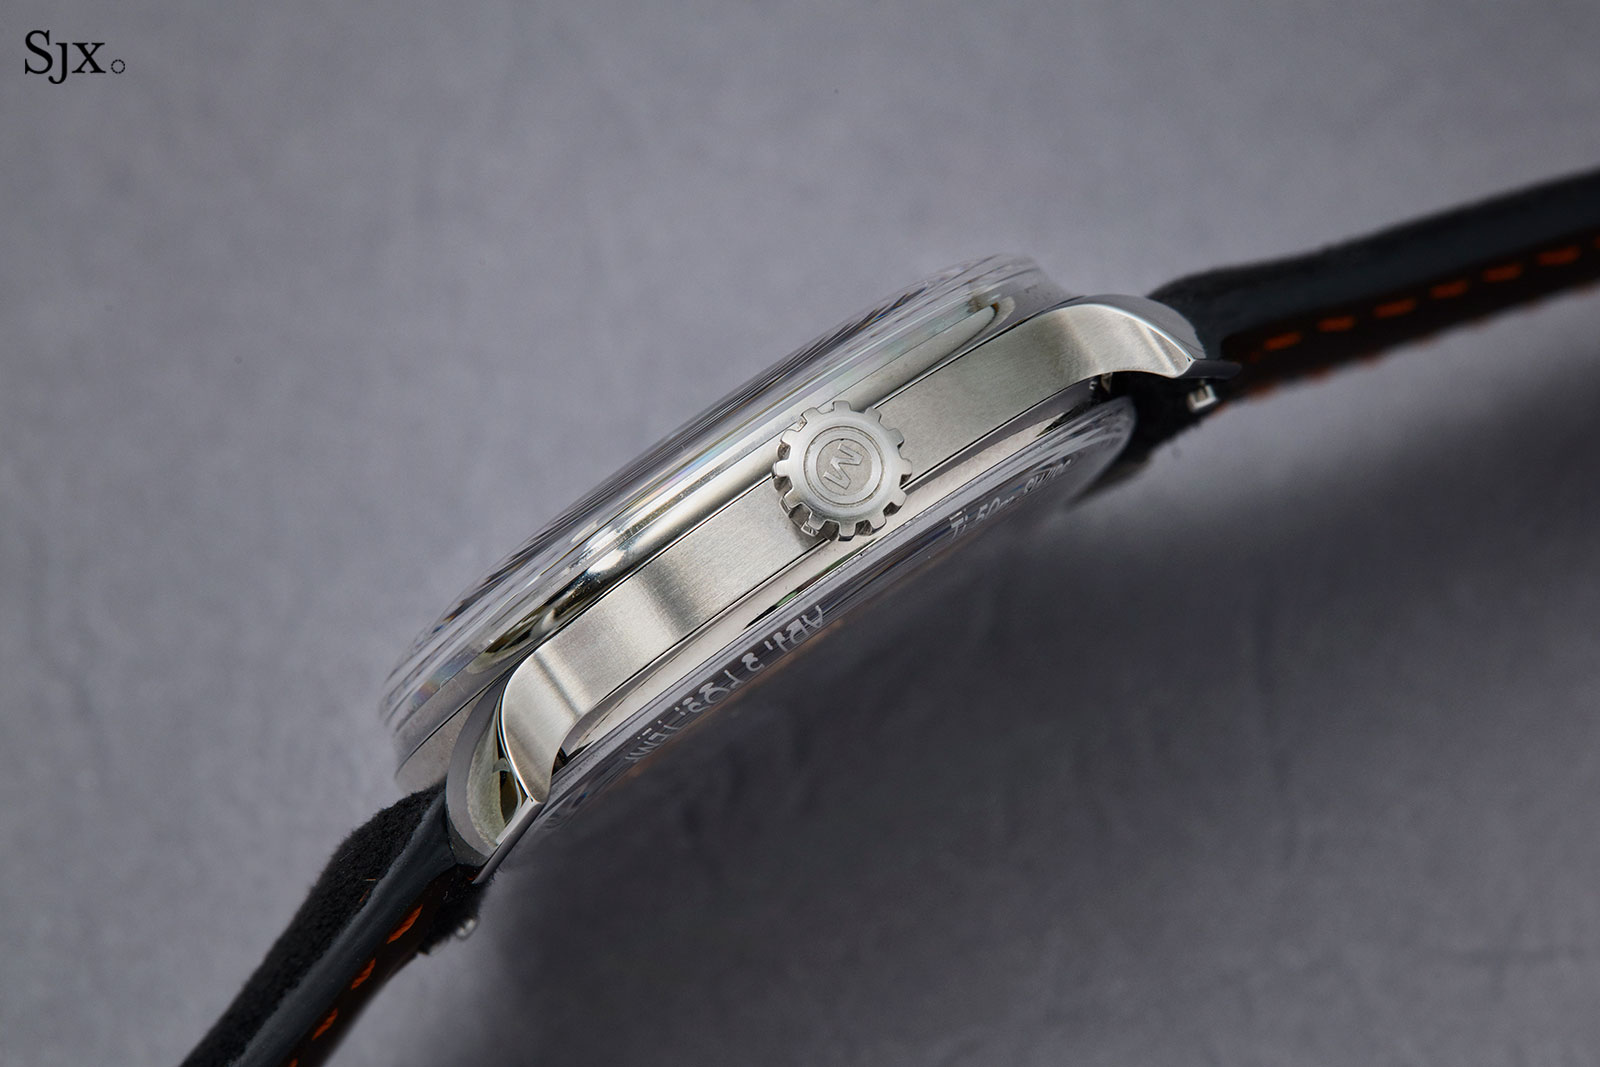 Ming 19.02 worldtimer watch 11